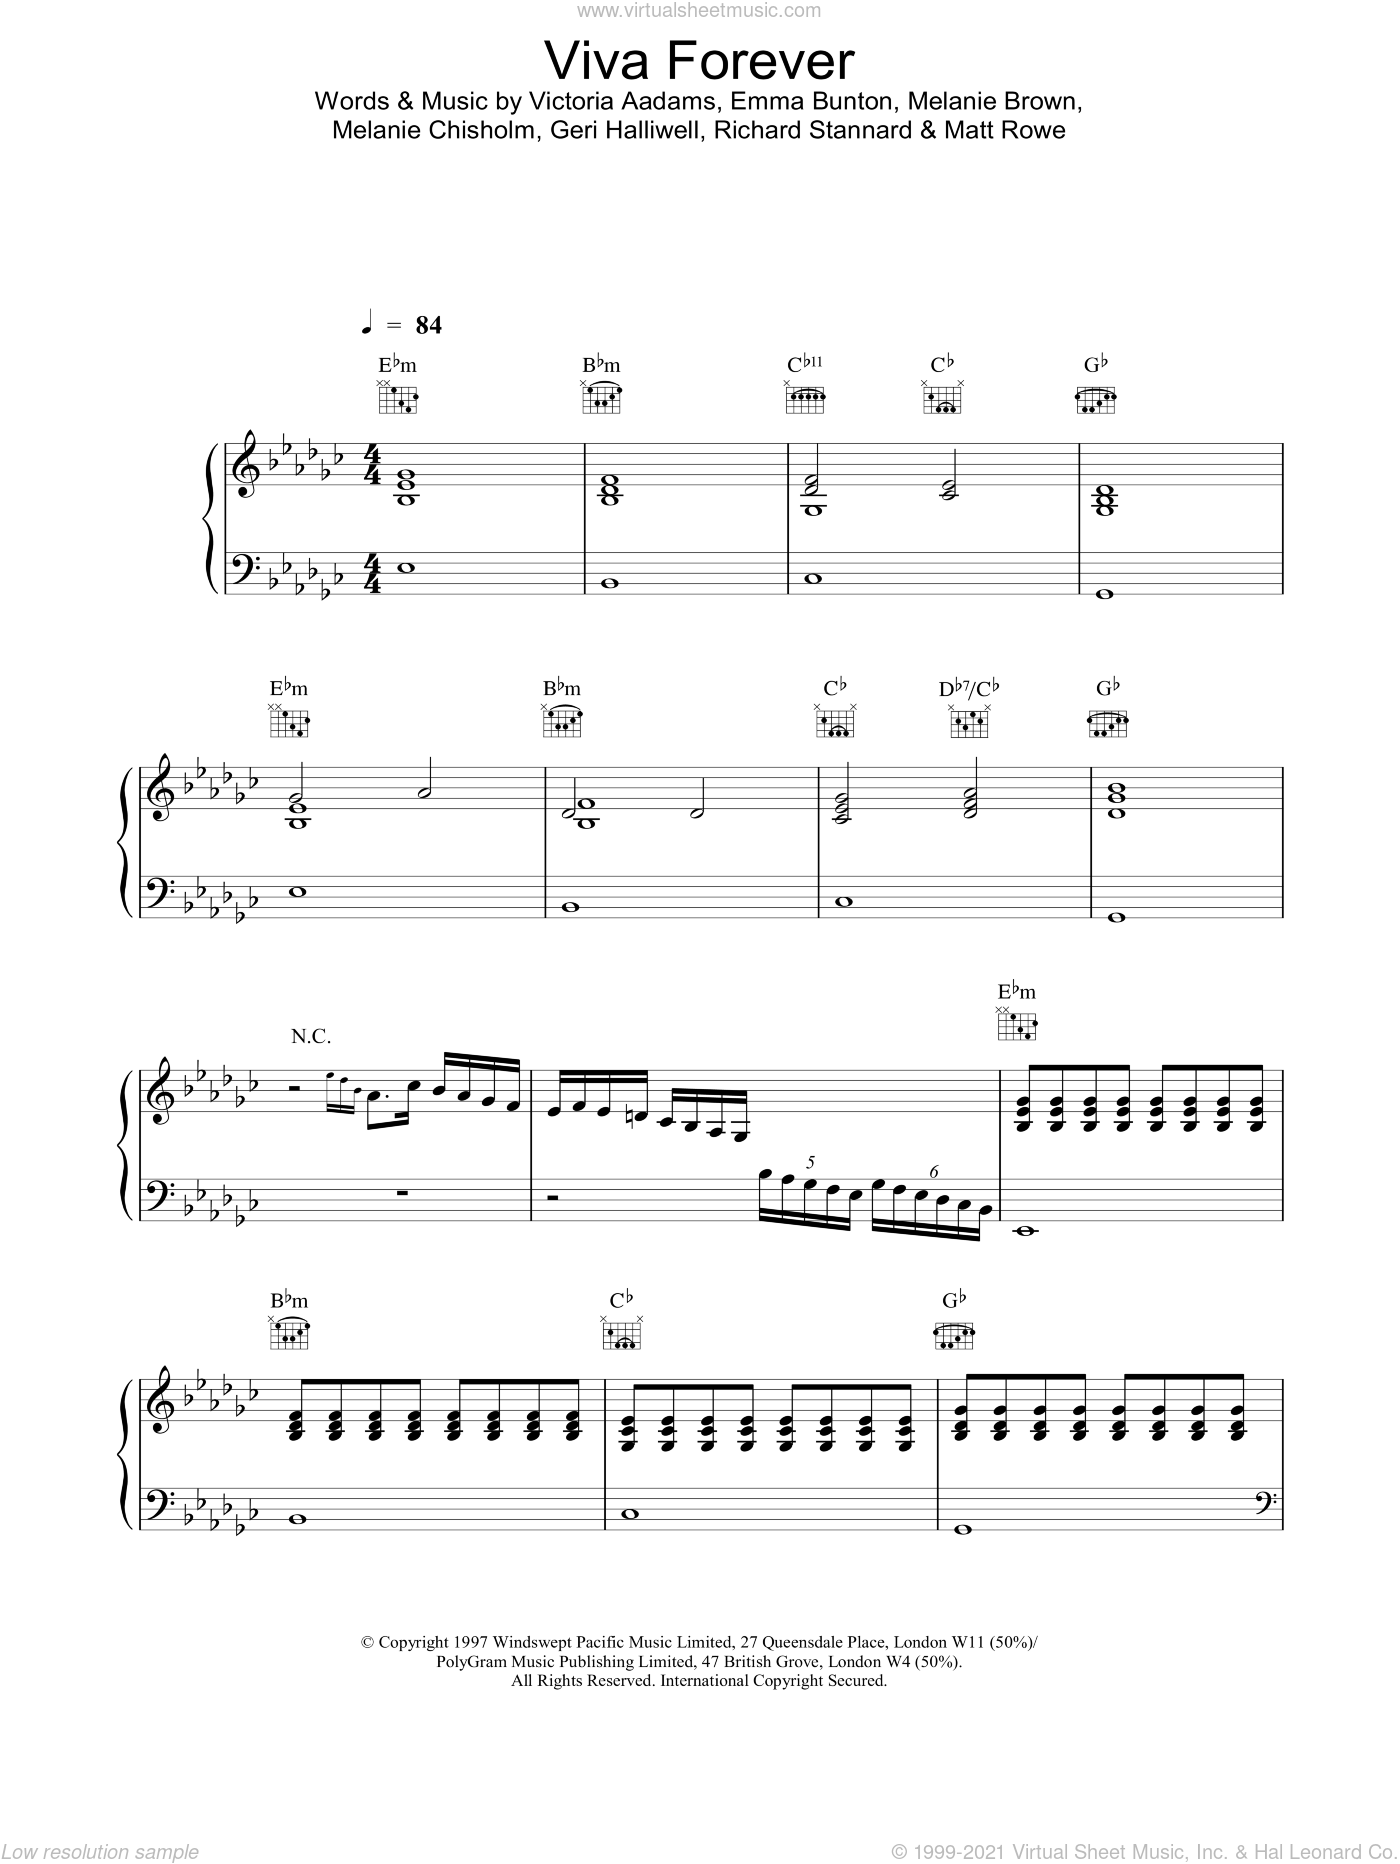 Viva Forever sheet music for voice, piano or guitar by The Spice Girls. Score Image Preview.